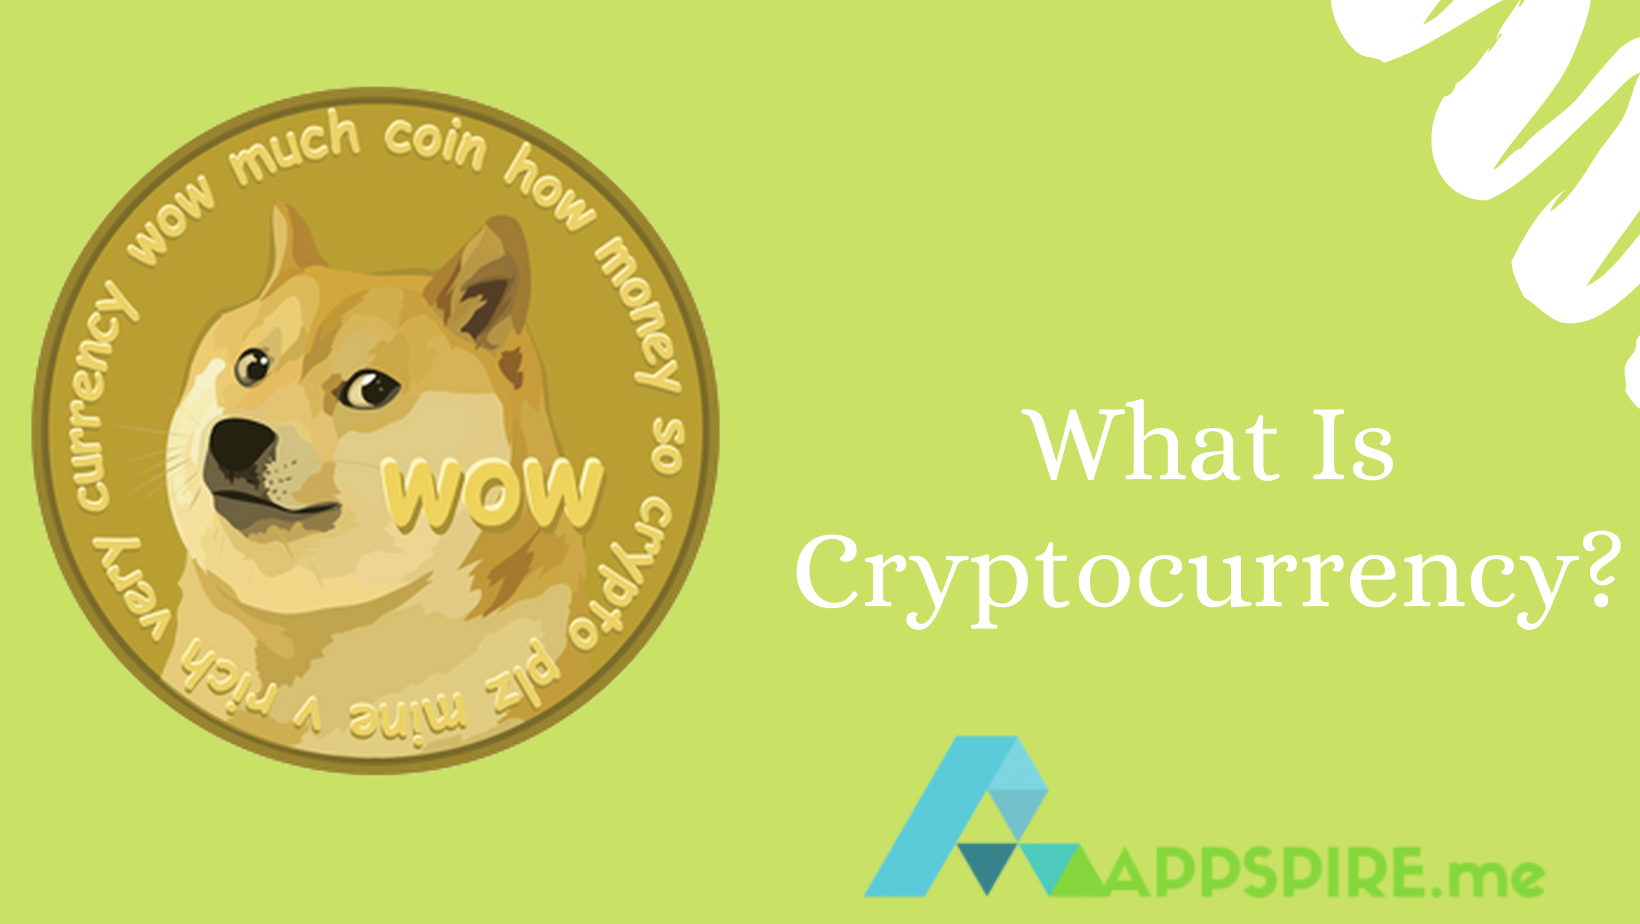 What Is Cryptocurrency? Is It Real Money or What?